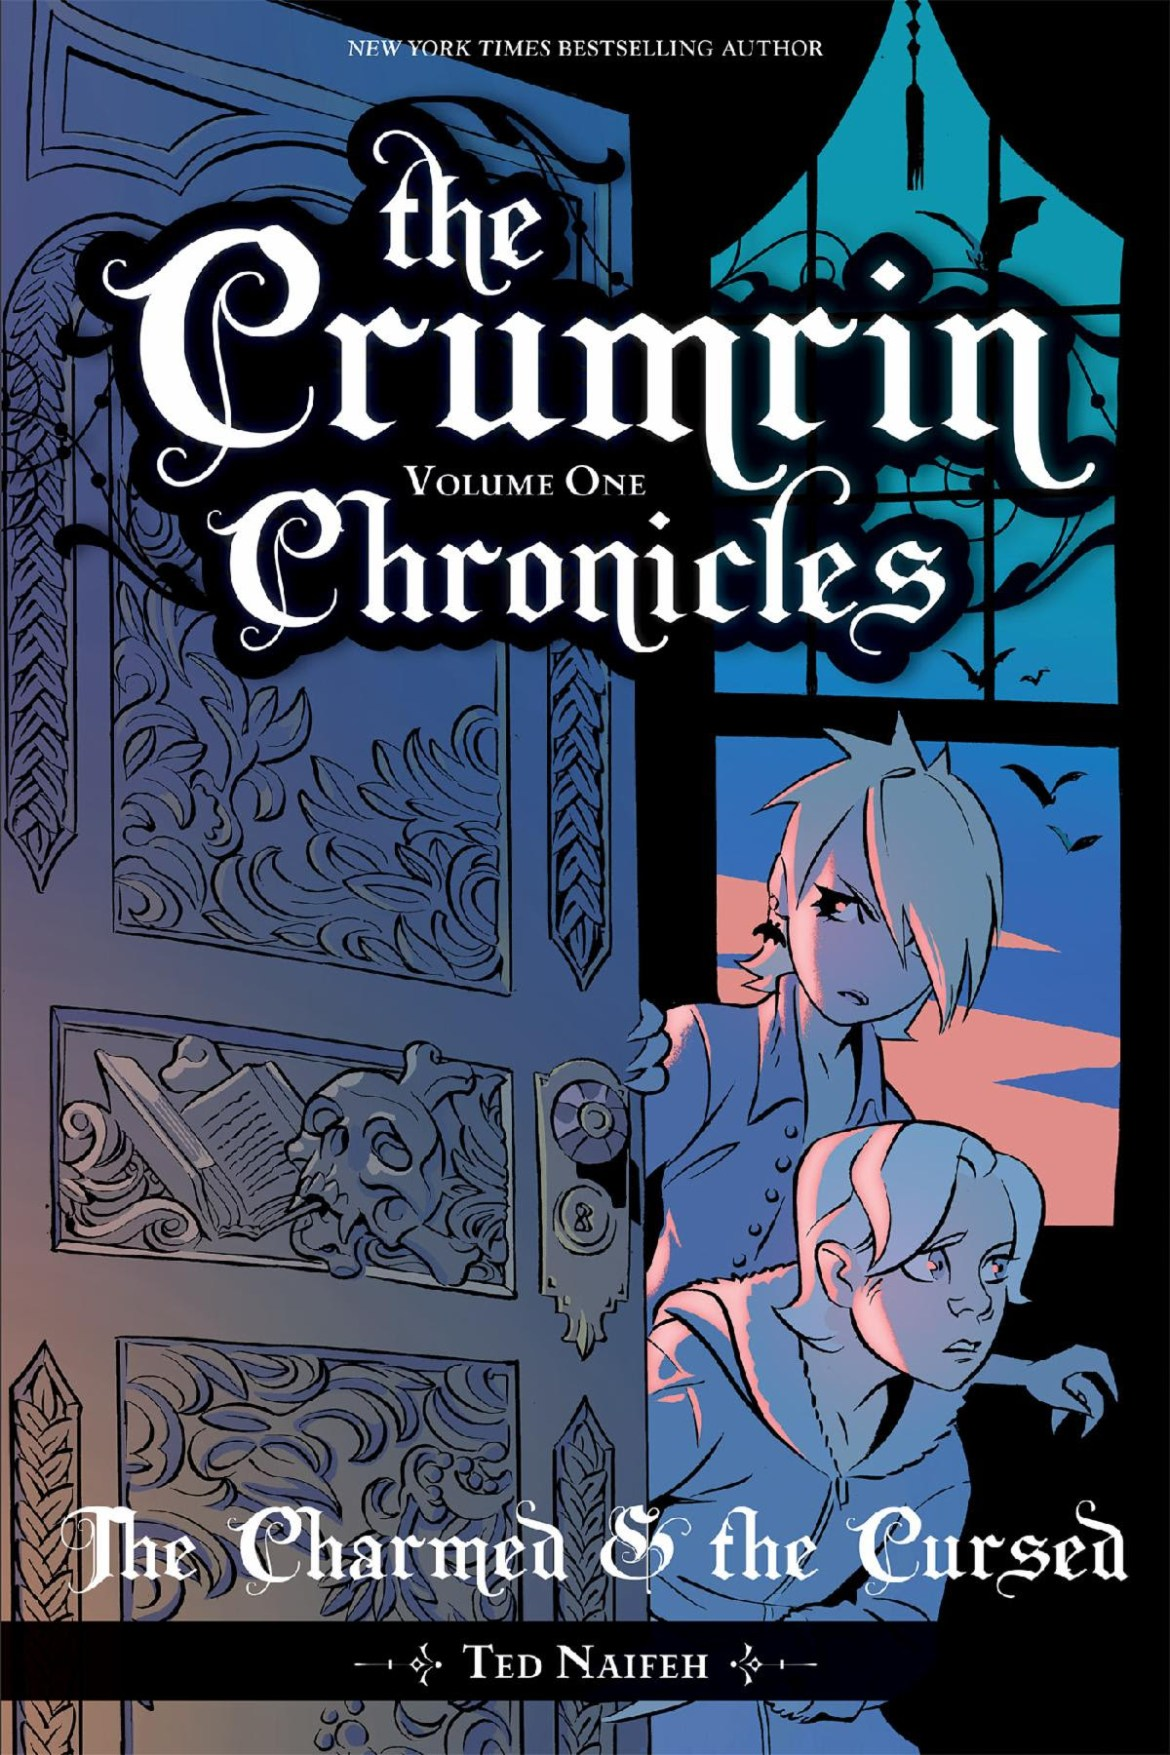 7b8df934-9678-4ee5-8c03-9632abc3b1af Oni-Lion Forge announce Summer 2021 children's and young adult graphic novels